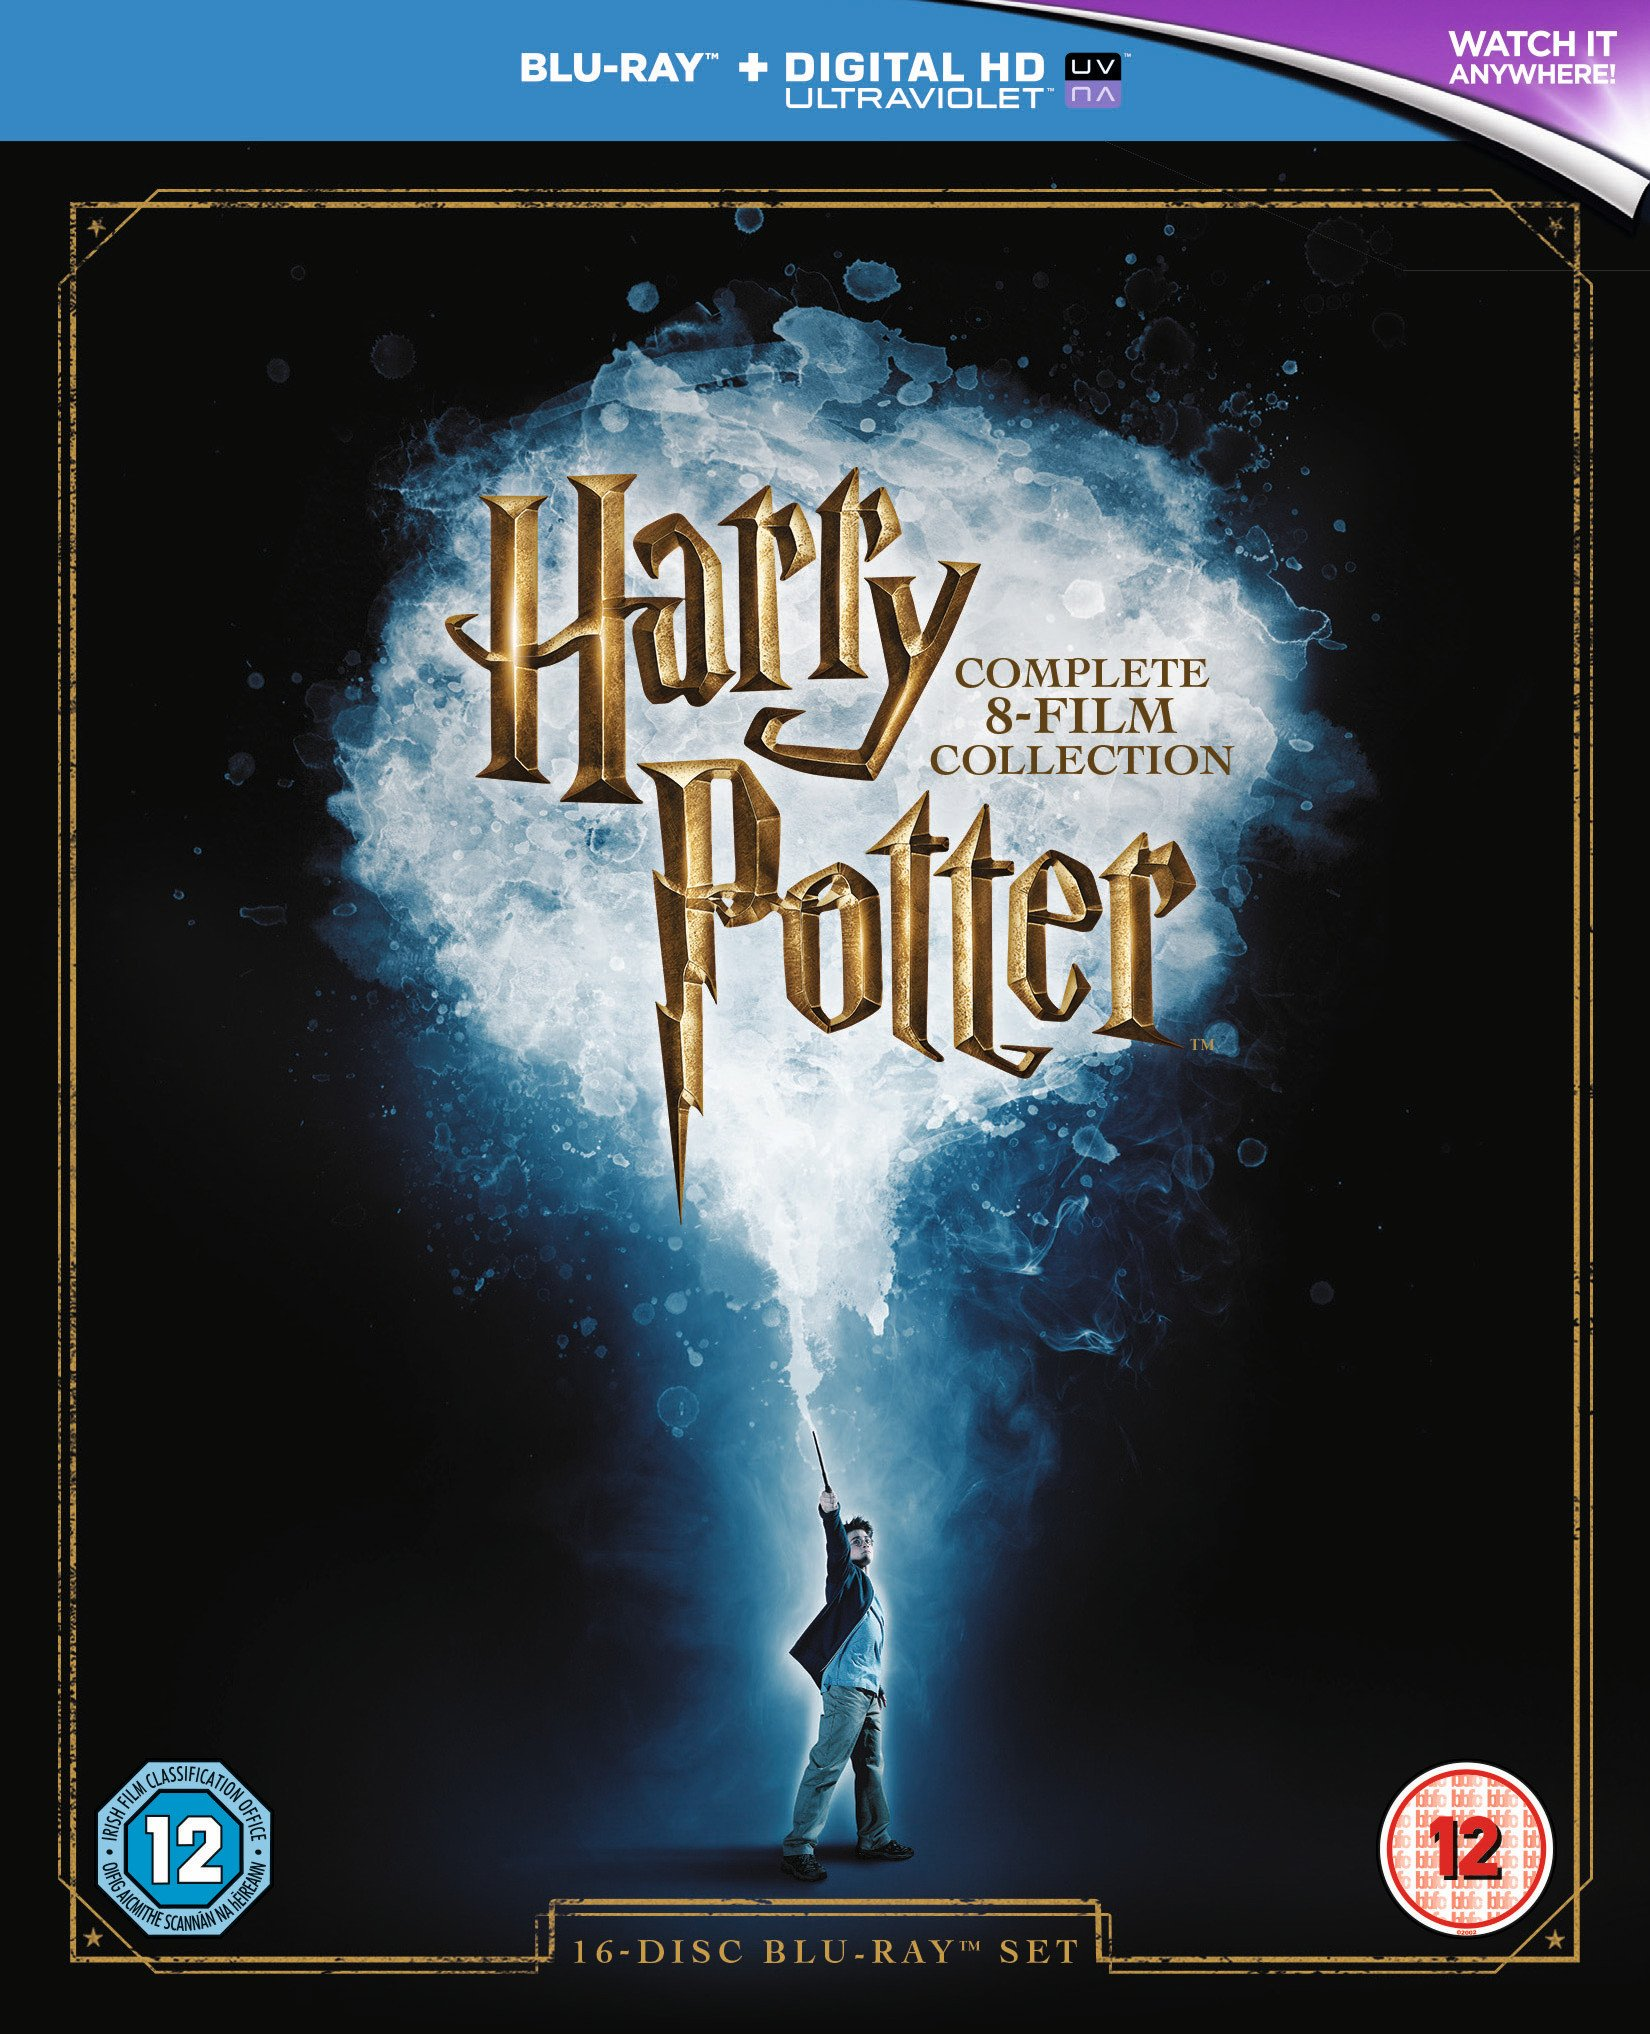 Harry Potter Harry Potter: The Complete 8 Film Collection 2016 Edition.